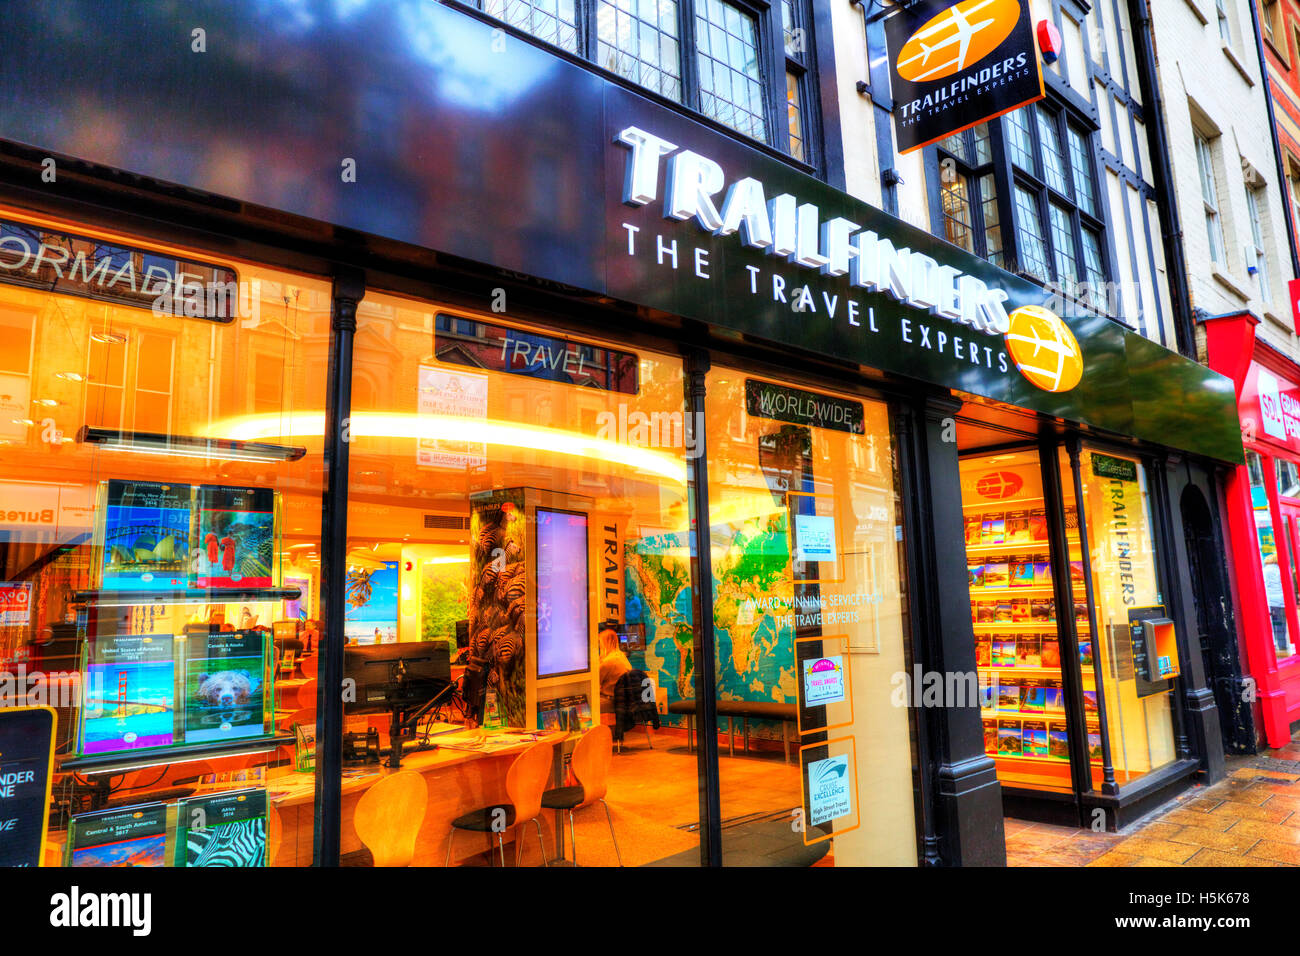 Trailfinders travel agent agents agency shop front store window display exterior building sign signs trail finders - Stock Image